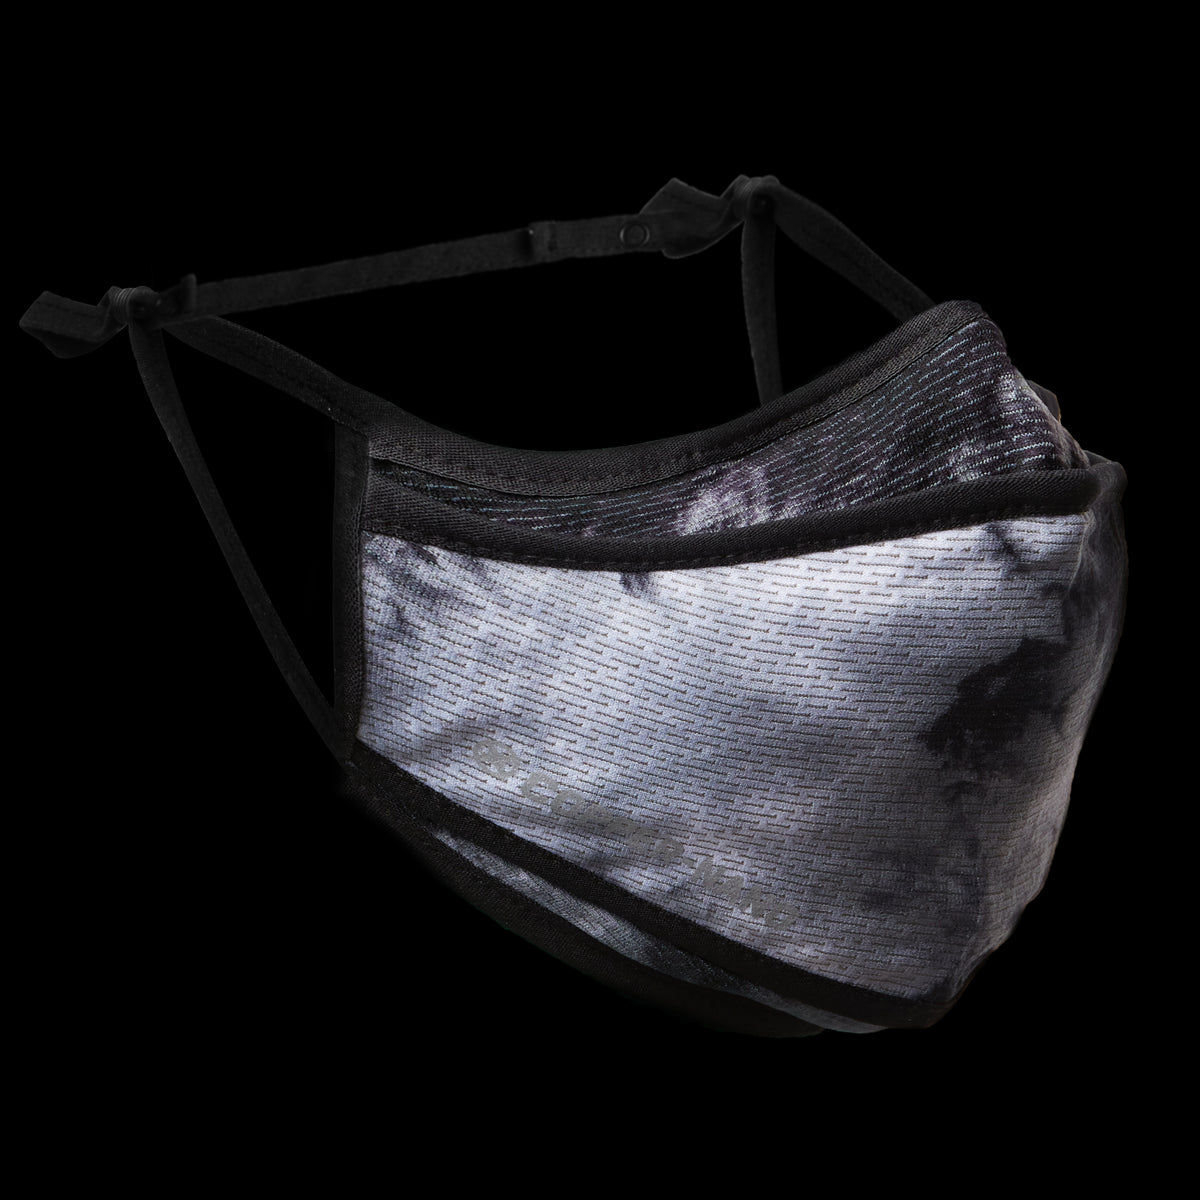 0384. Copper-Nano Tri-Fold Face Mask (with Bag) - Black Tie Dye